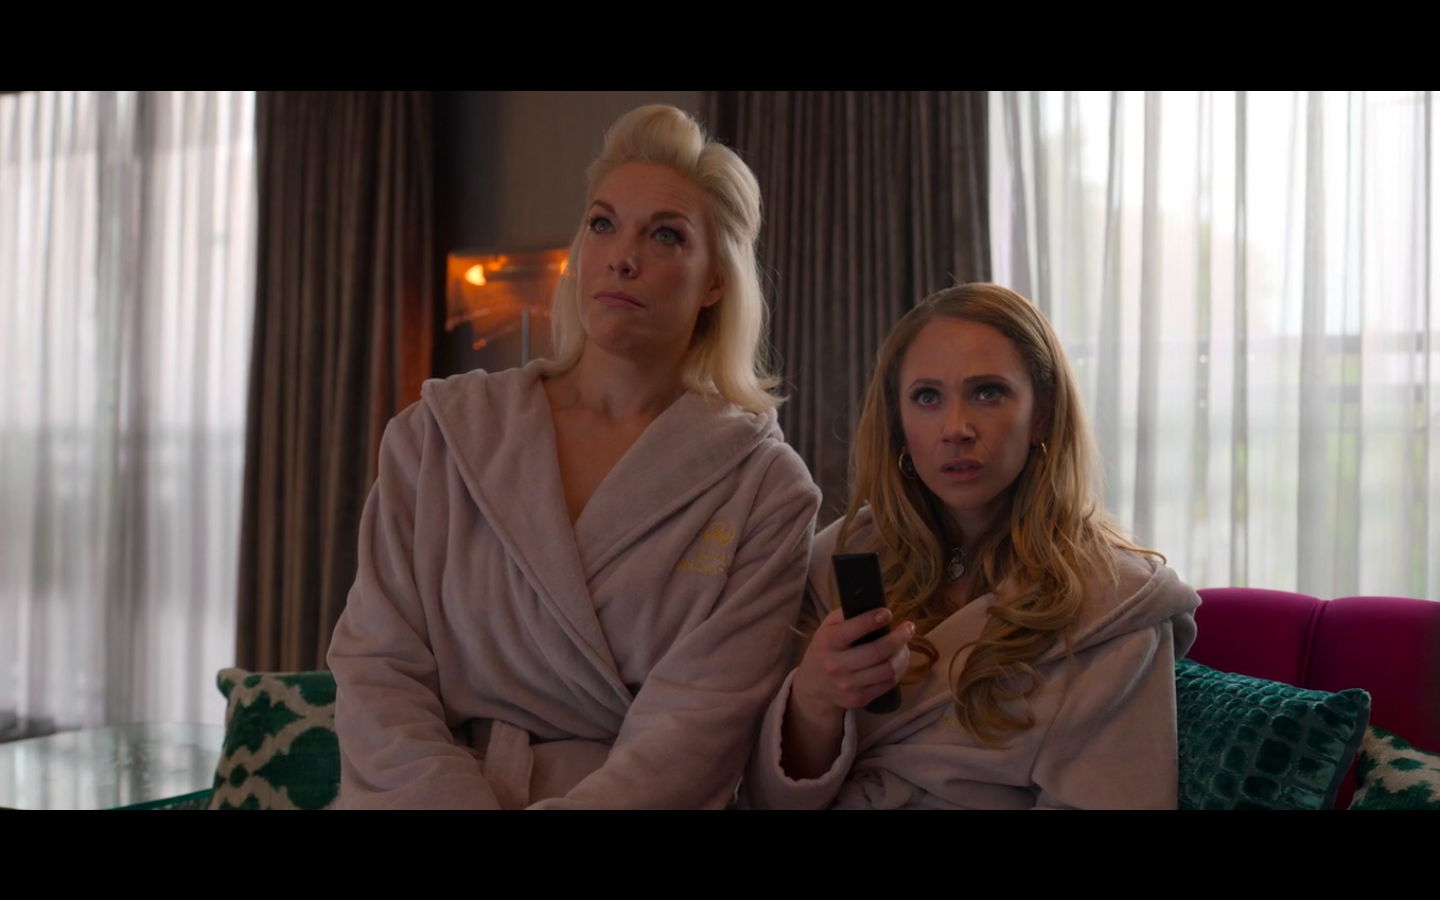 Rebecca and Keeley sit on a couch in a hotel wearing matching beige bathrobes. They are looking